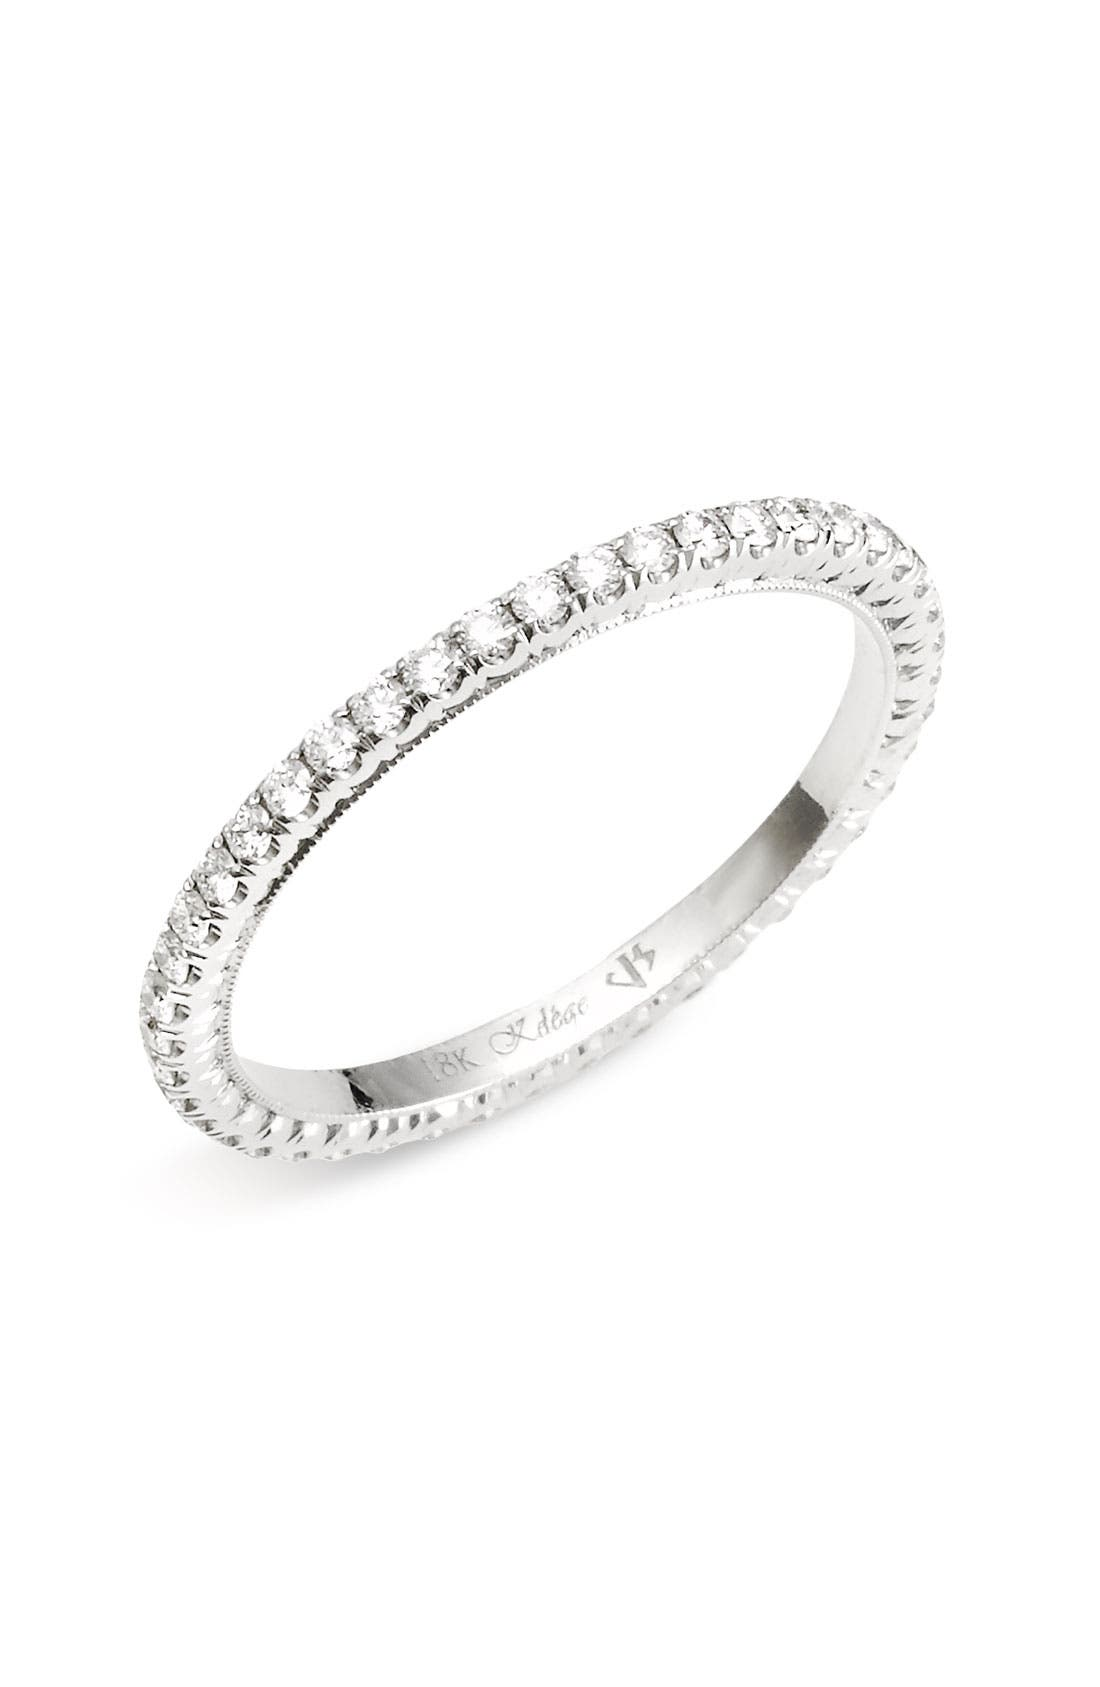 Main Image - Jack Kelége Diamond Eternity Band